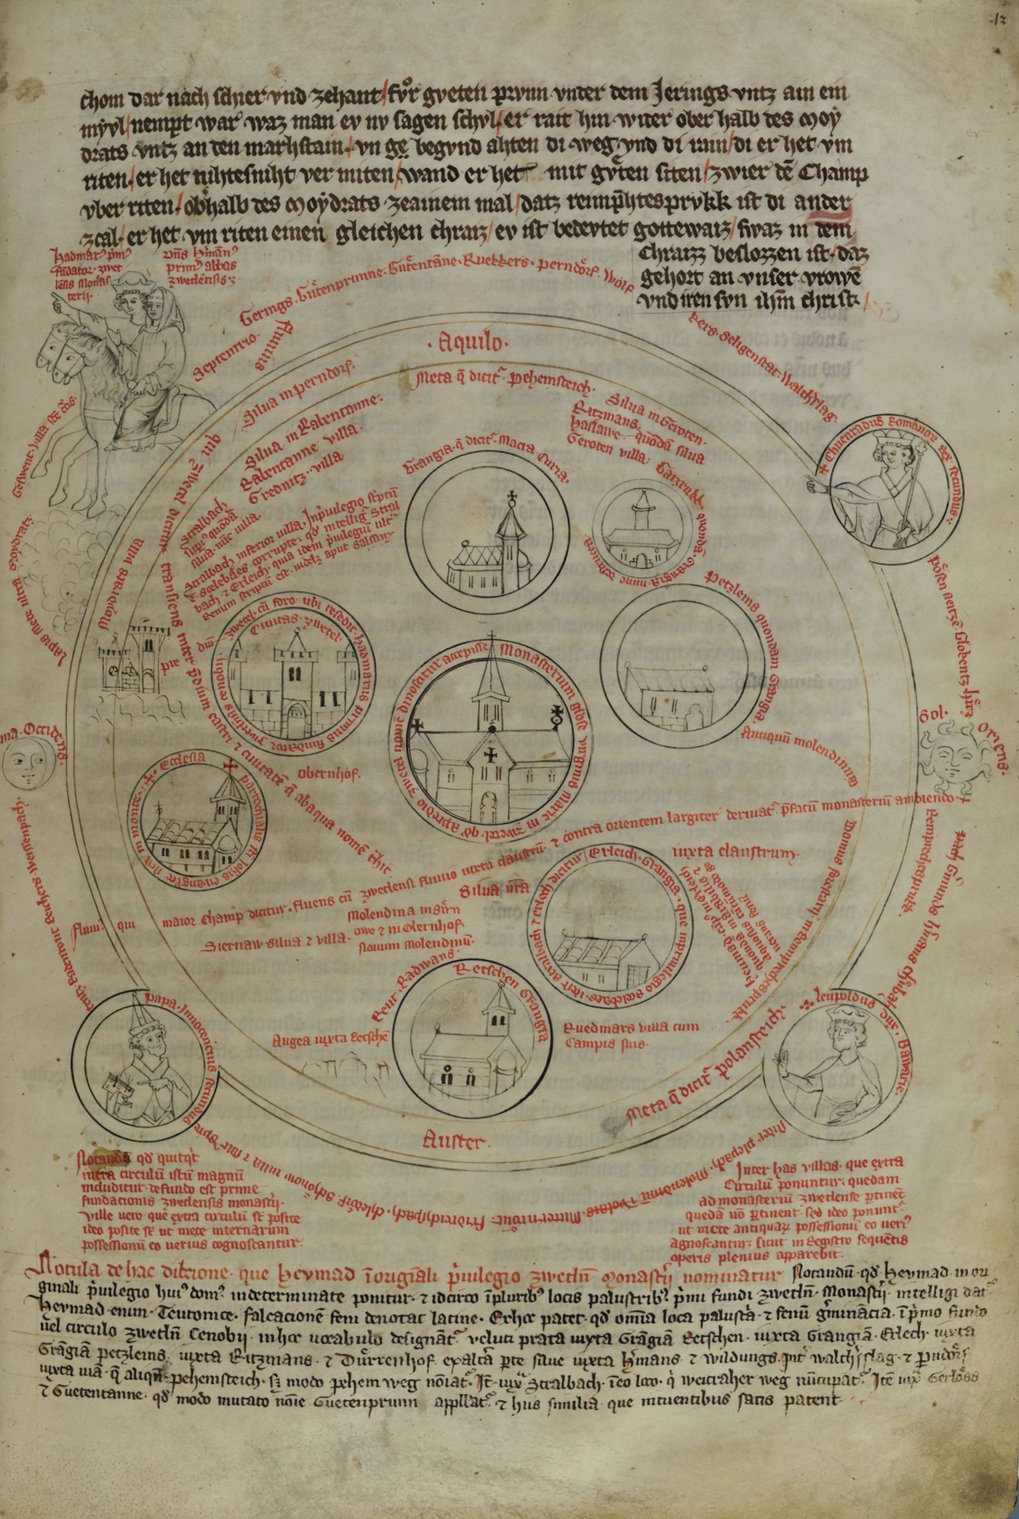 Zwettler Bärenhaut, Folio 12R; Quelle: Stiftsbibliothek Zwettl Codex 2/1. http://manuscripta.at/diglit/AT9800-A2_1/0001